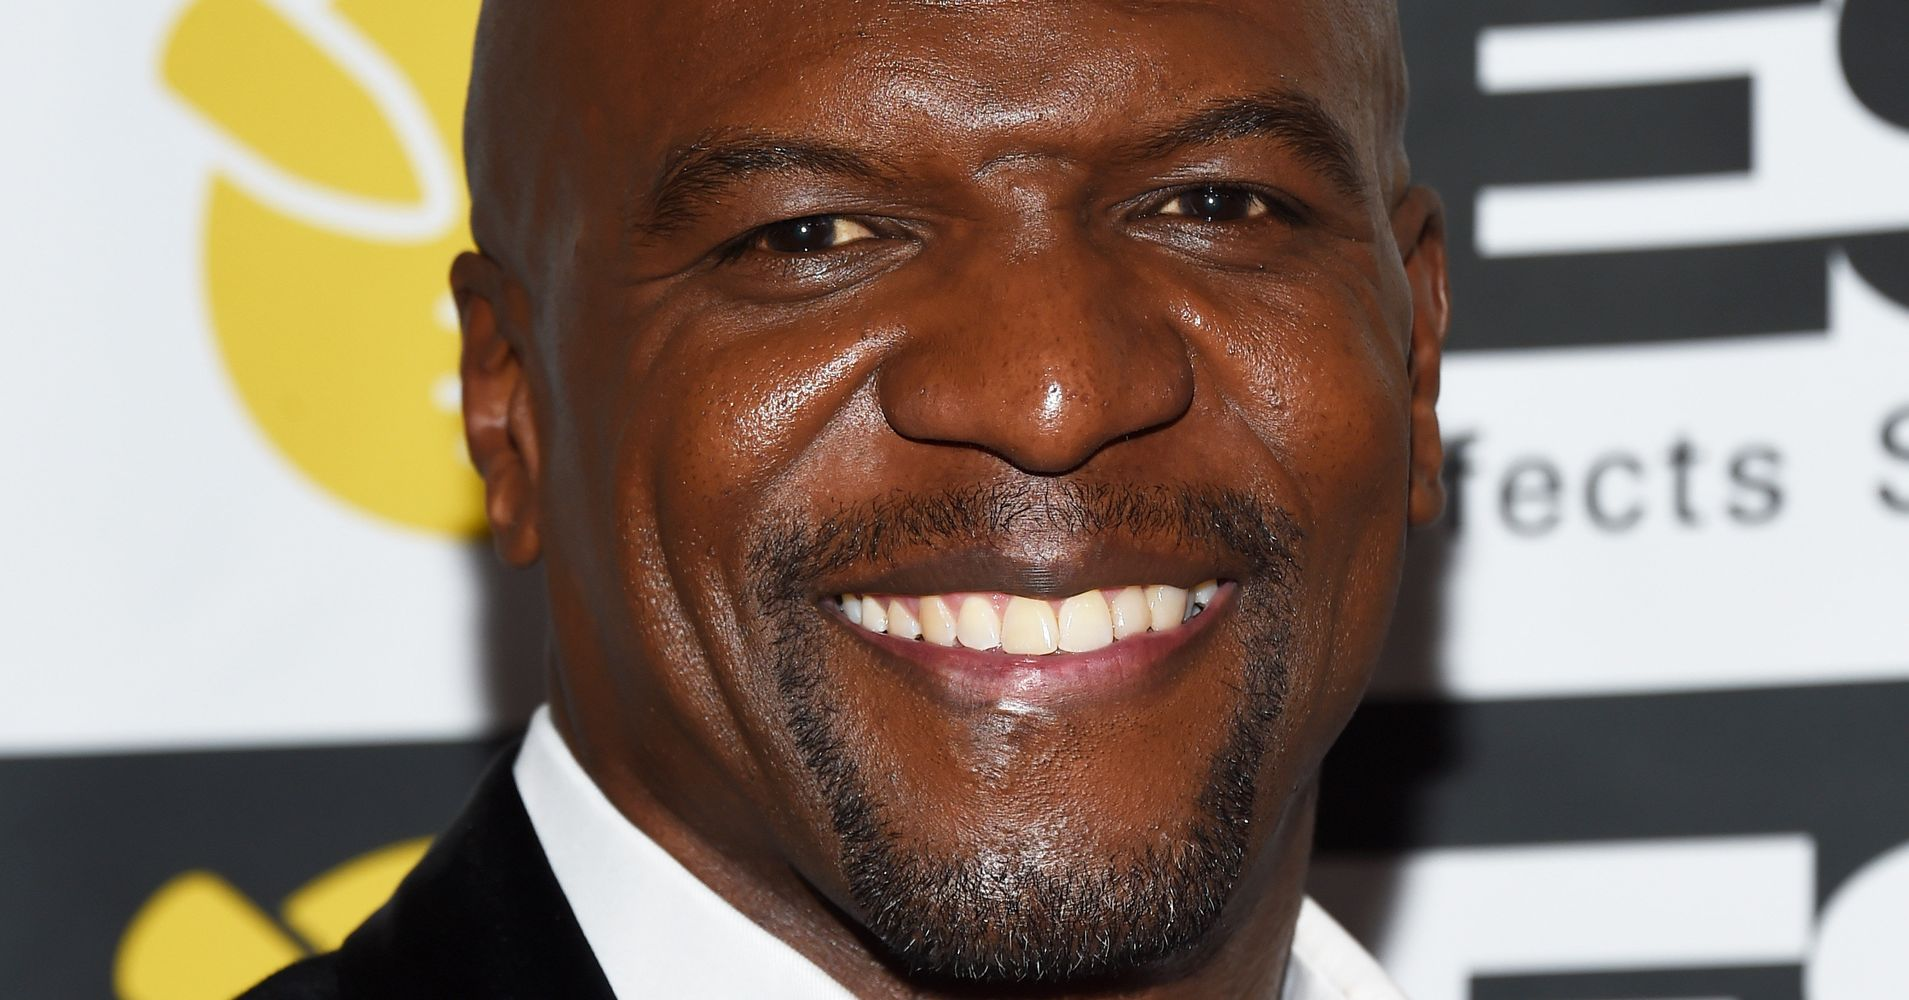 Terry Crews Opens Up About Pornography Addiction That ...